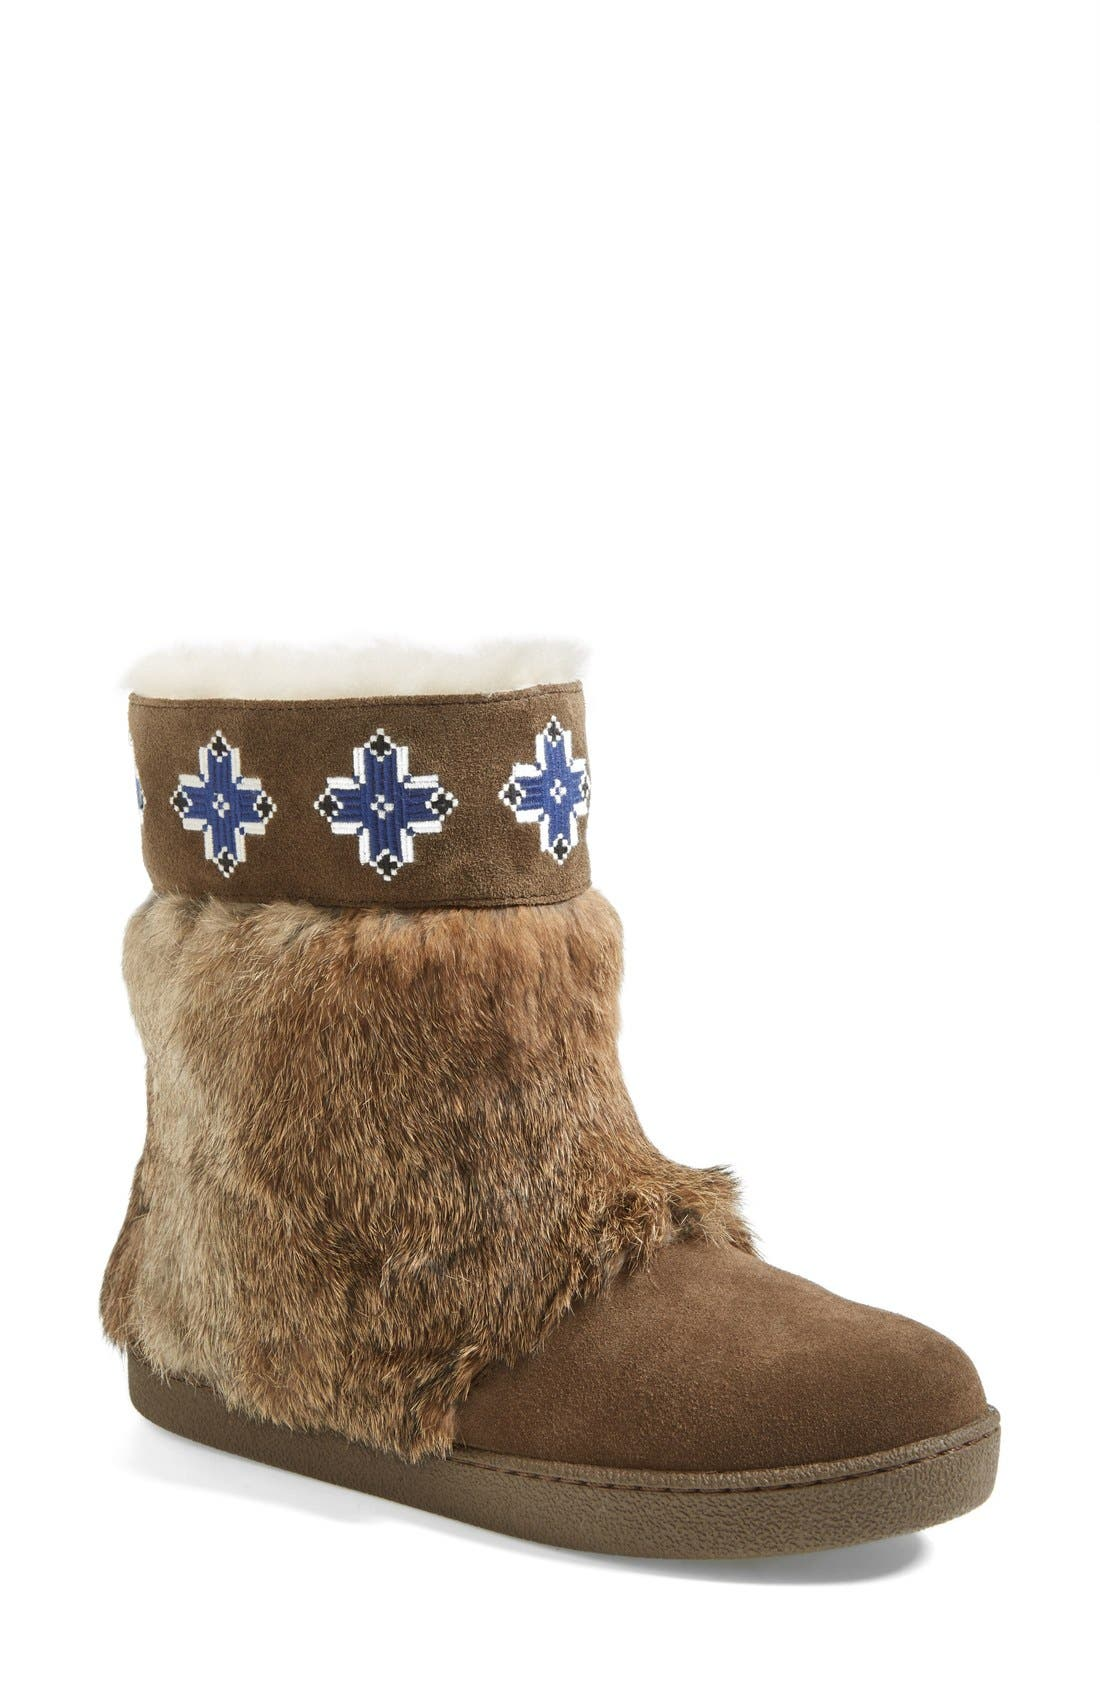 Main Image - Tory Burch 'Lafayette' Embroidered Bootie